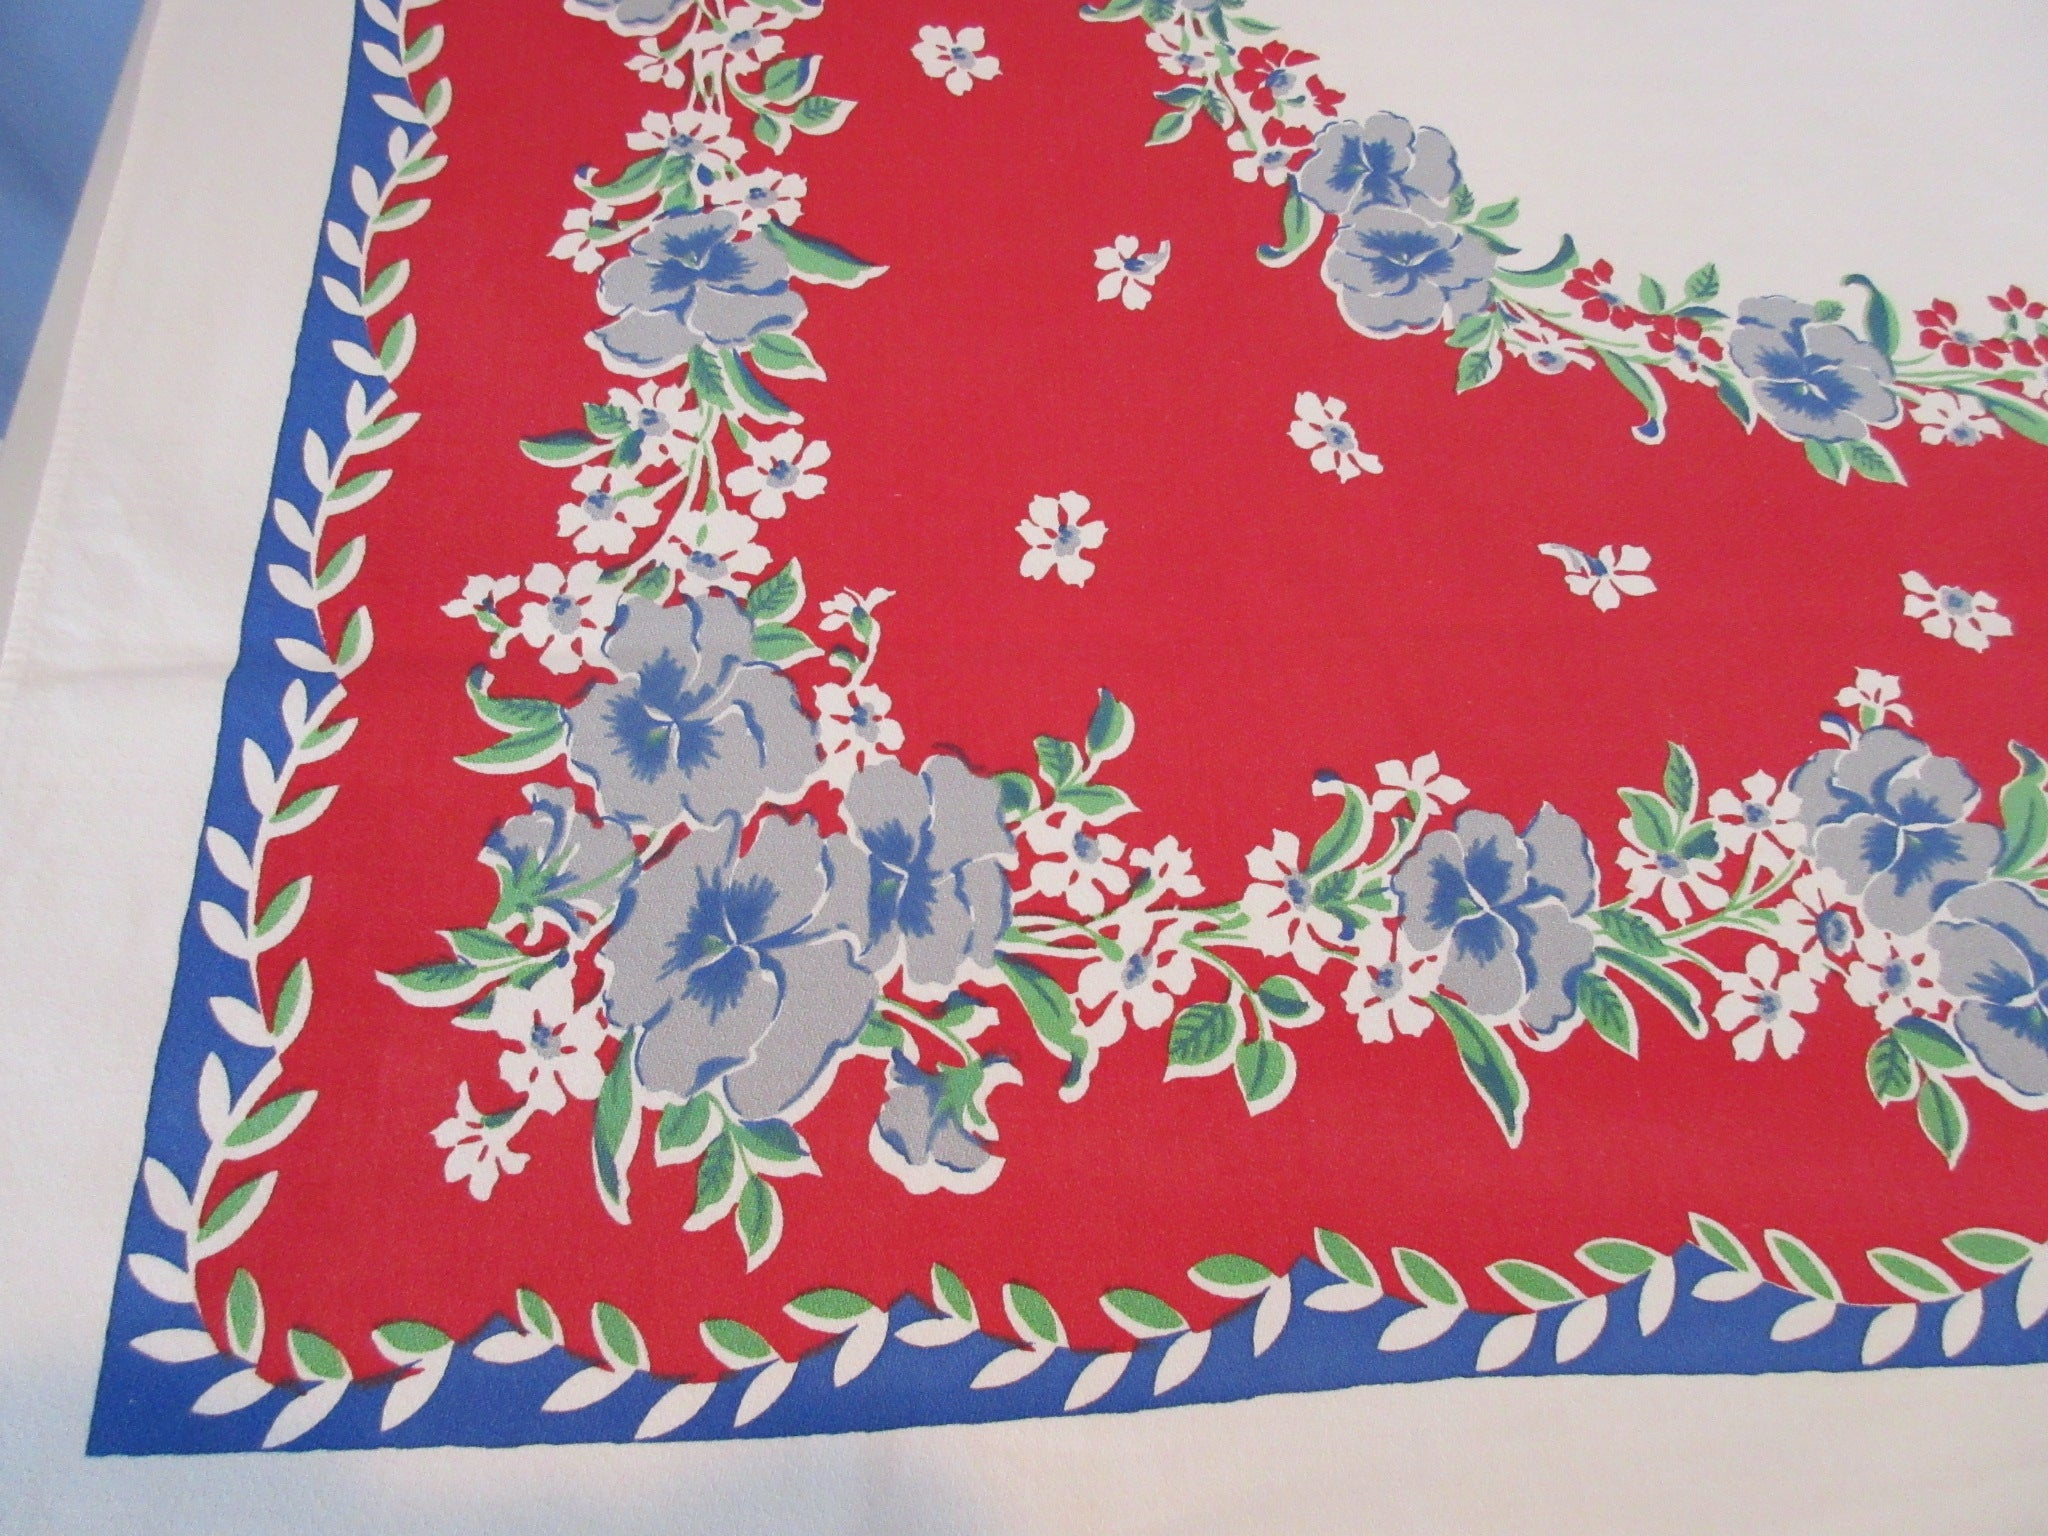 Blue Gray Green Pansies on Red Floral Vintage Printed Tablecloth (63 X 48)